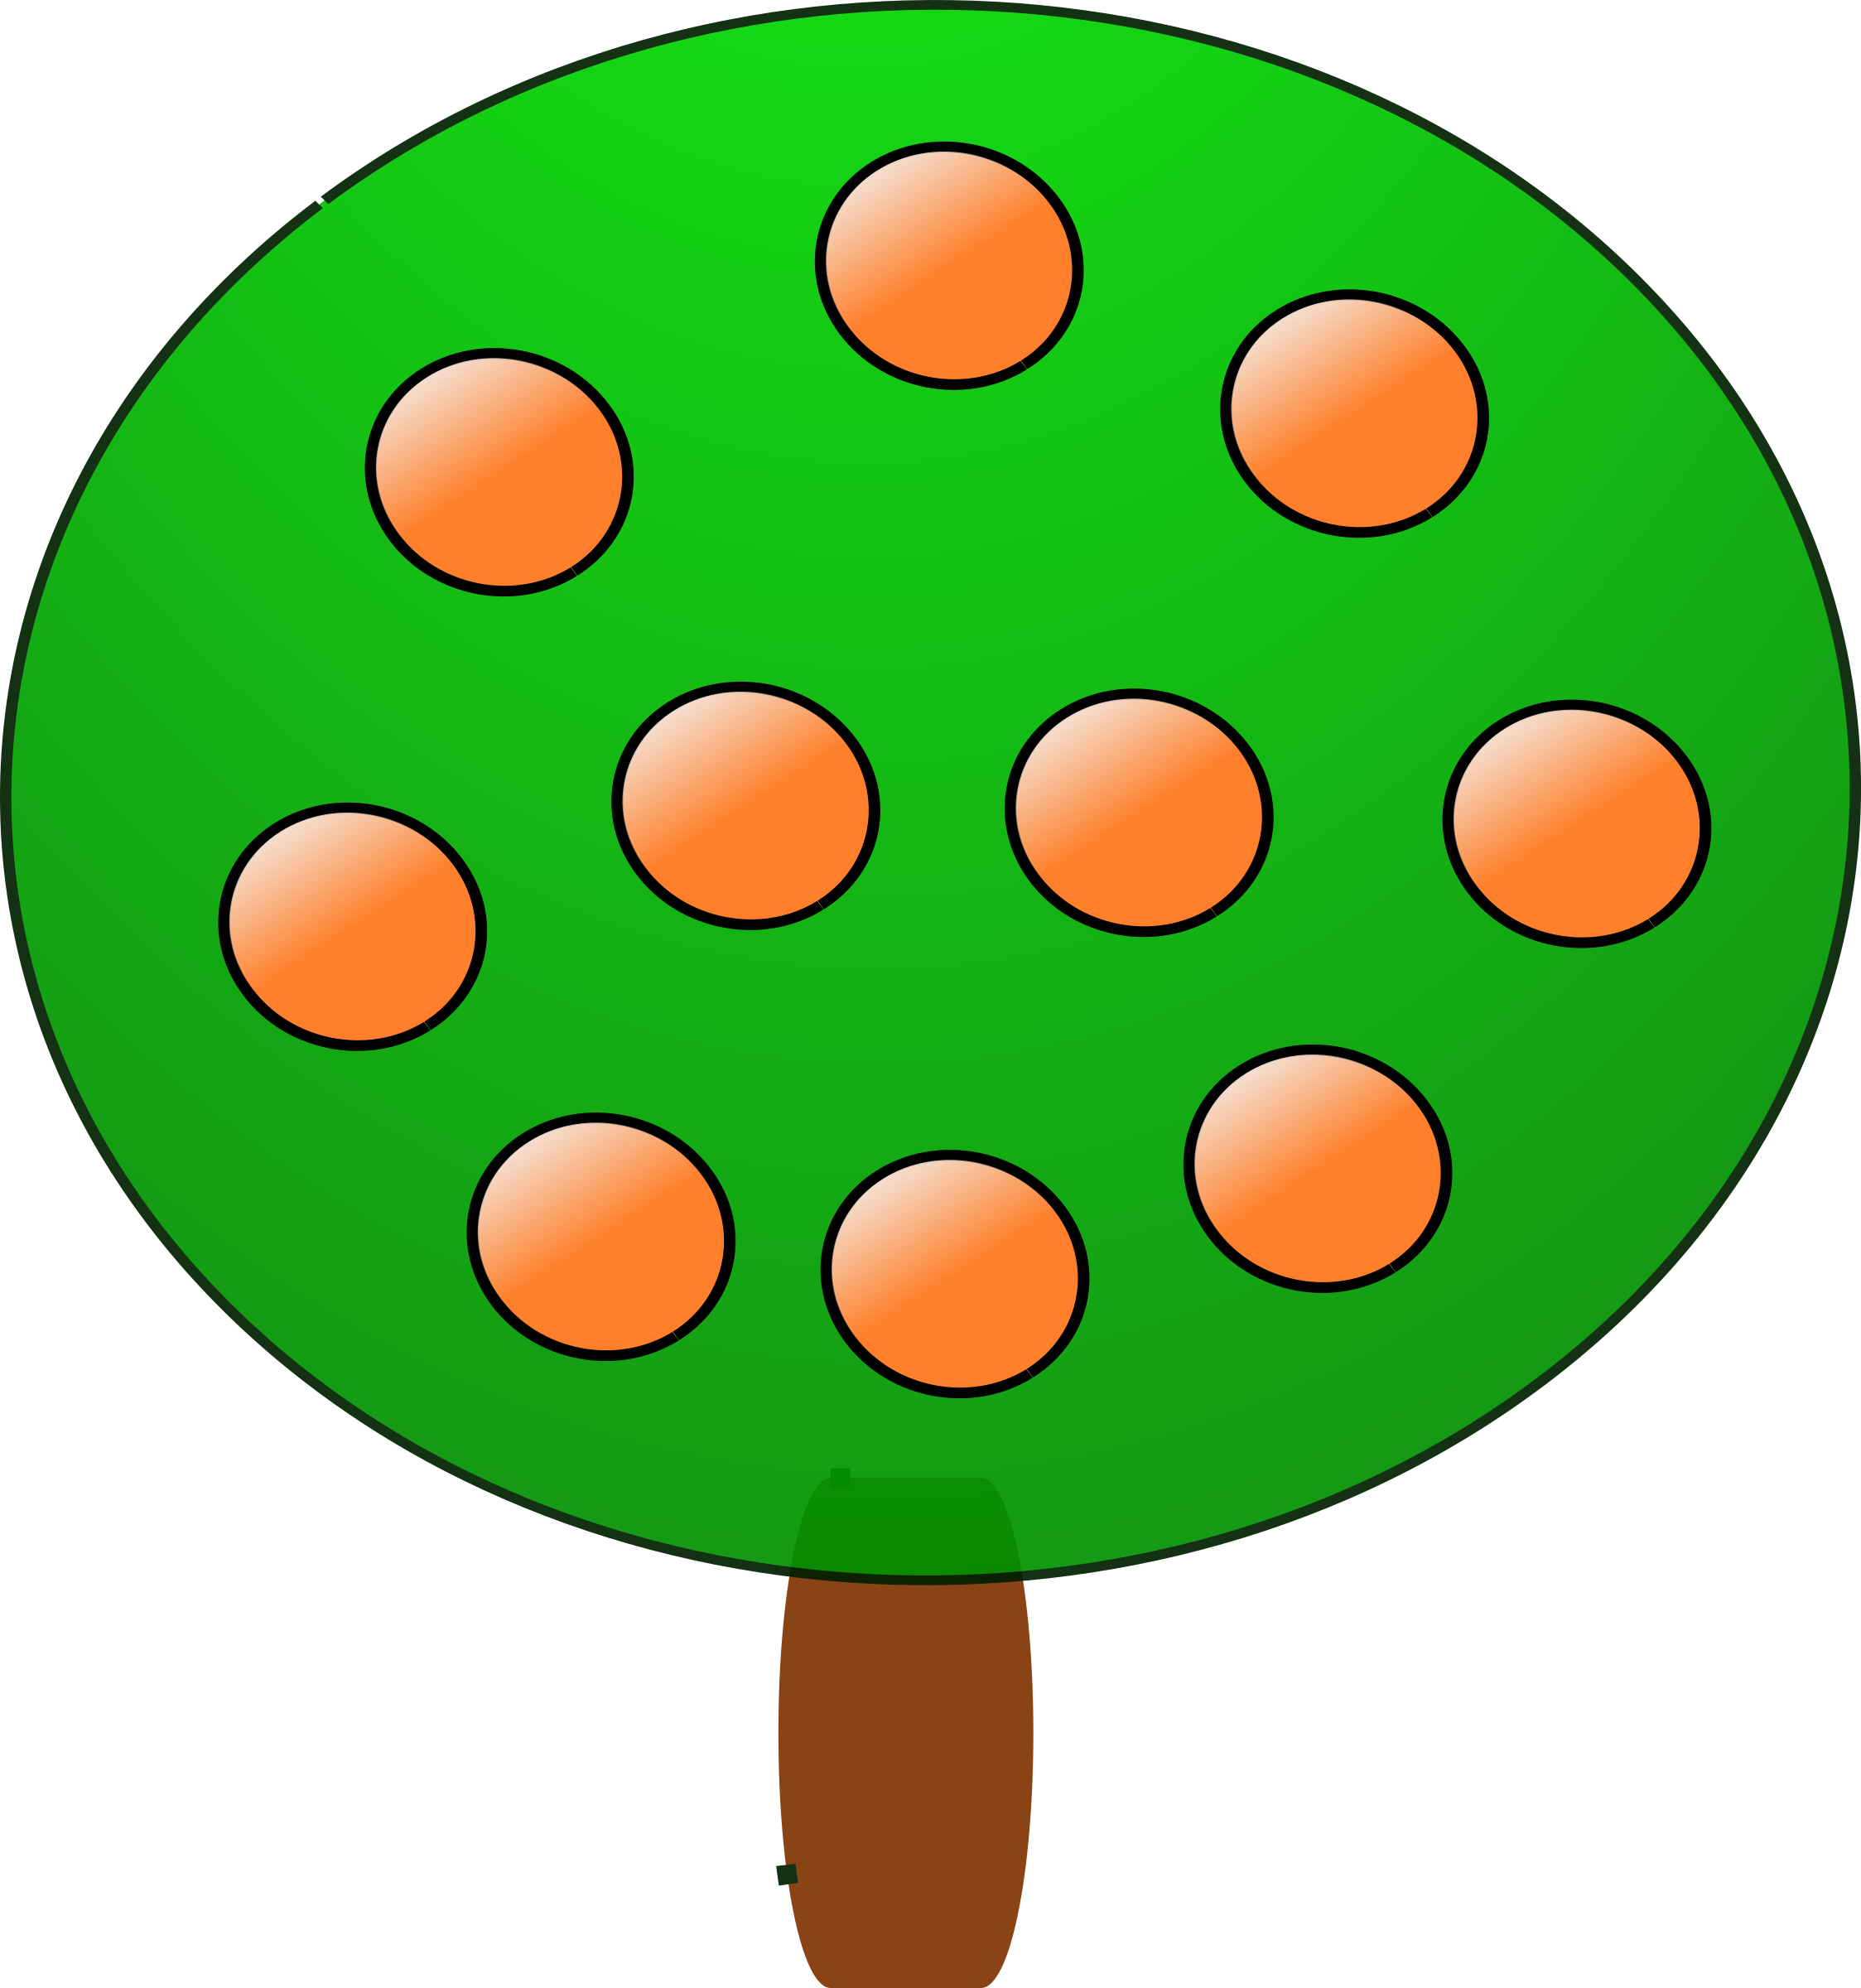 Tree with fruit clipart vector Clipart - Fruit tree 3, orange vector